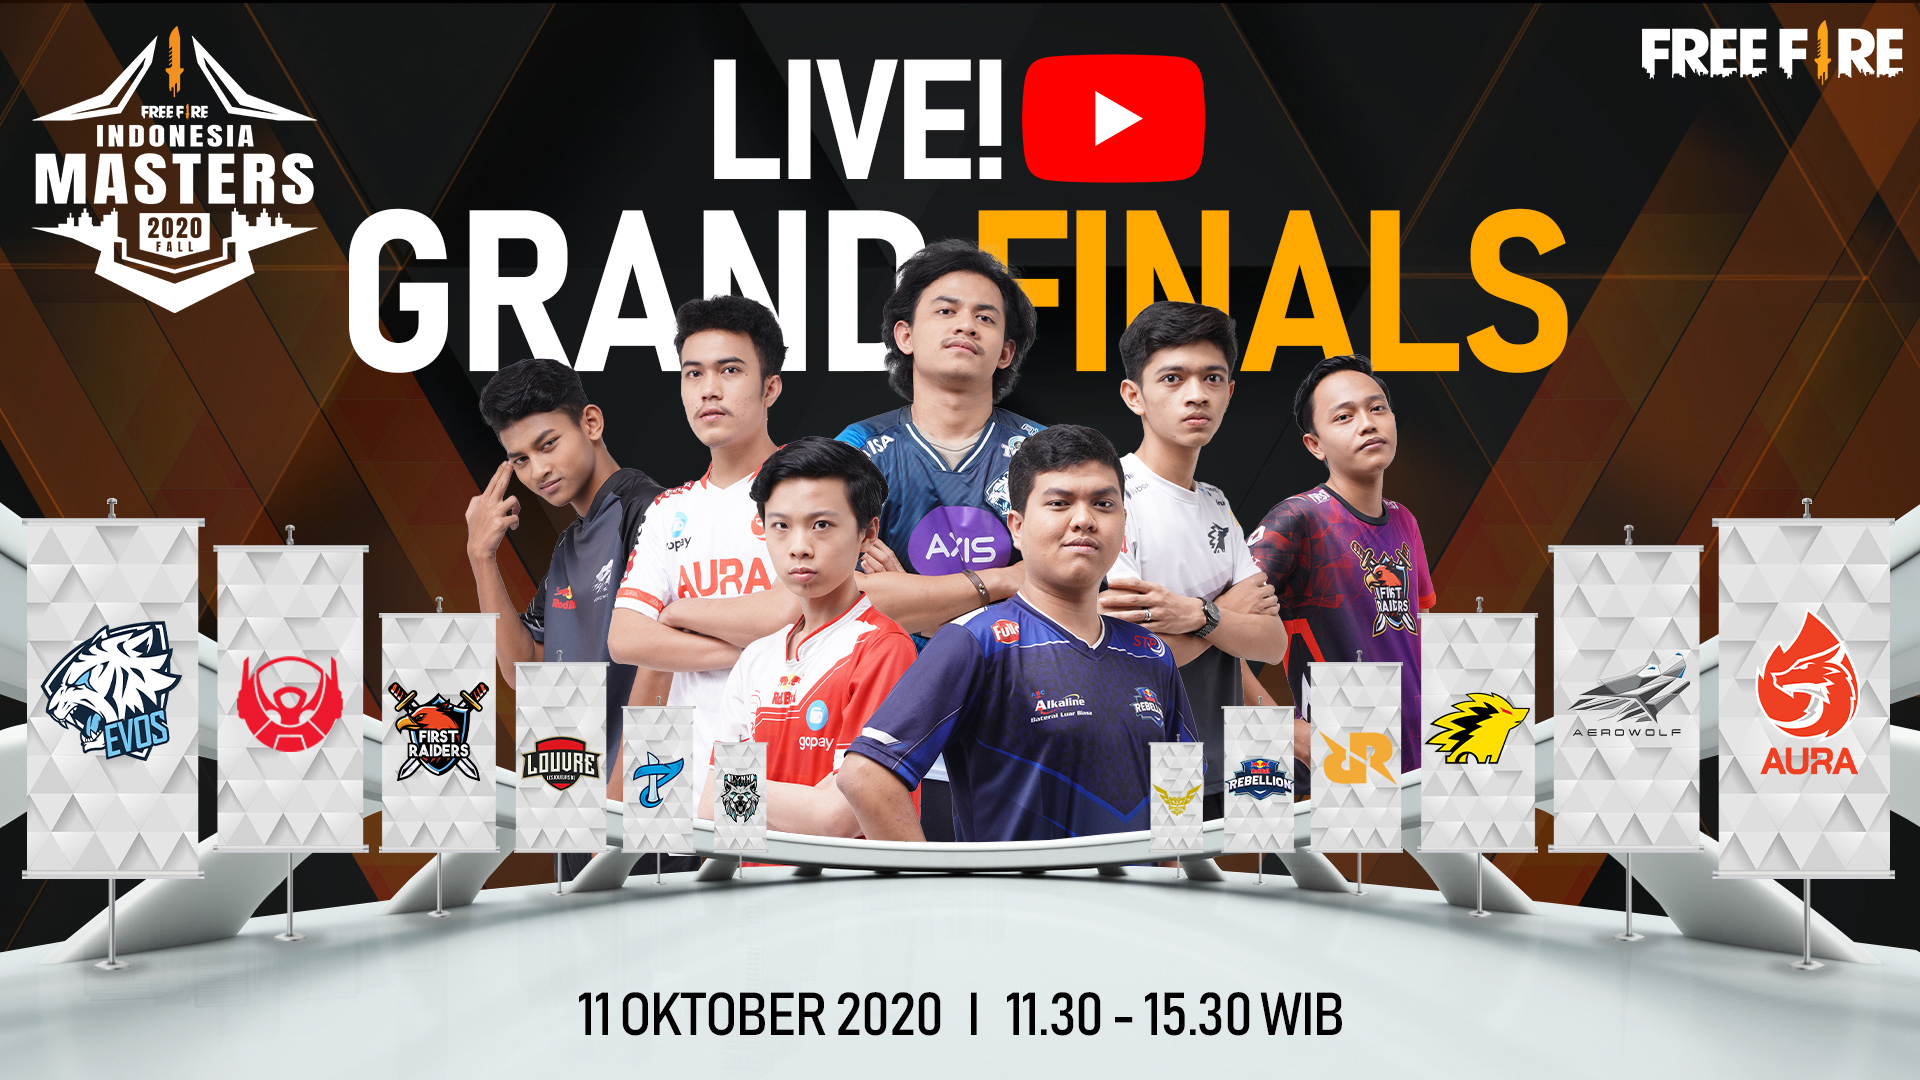 Grand Finals Free Fire Indonesia Masters 2020 Fall